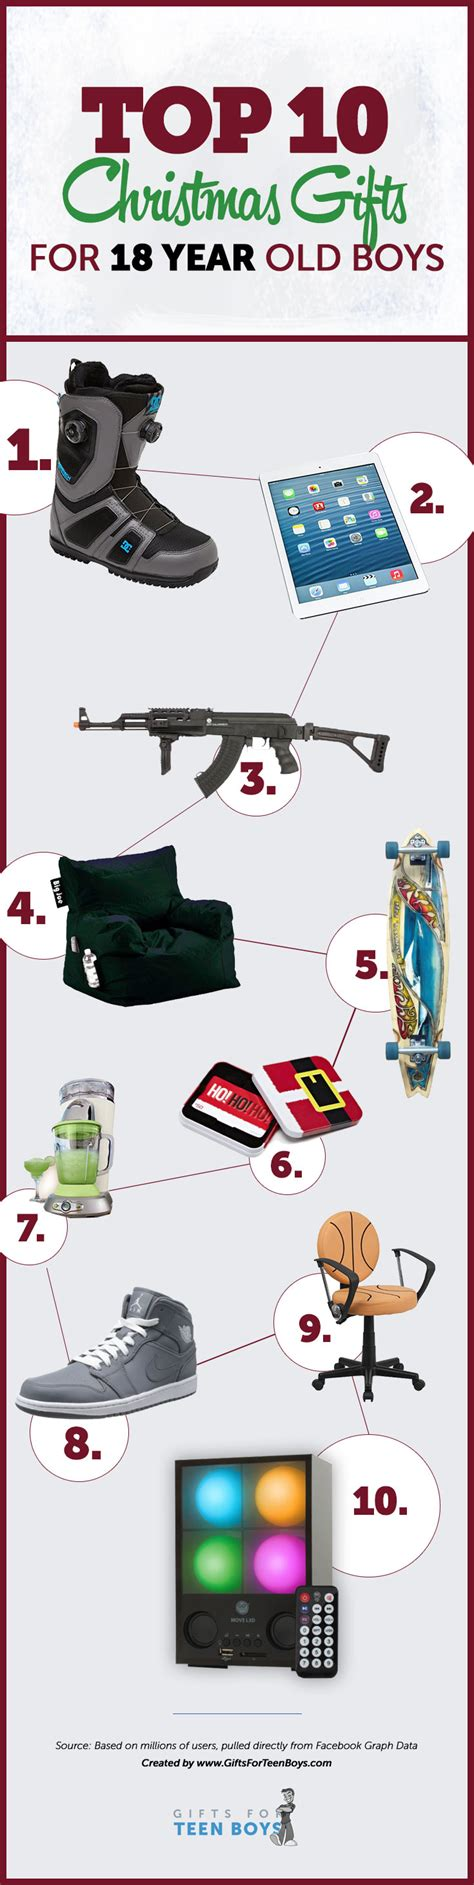 top christmas gifts for 15 year old boys 2014 holidays oo